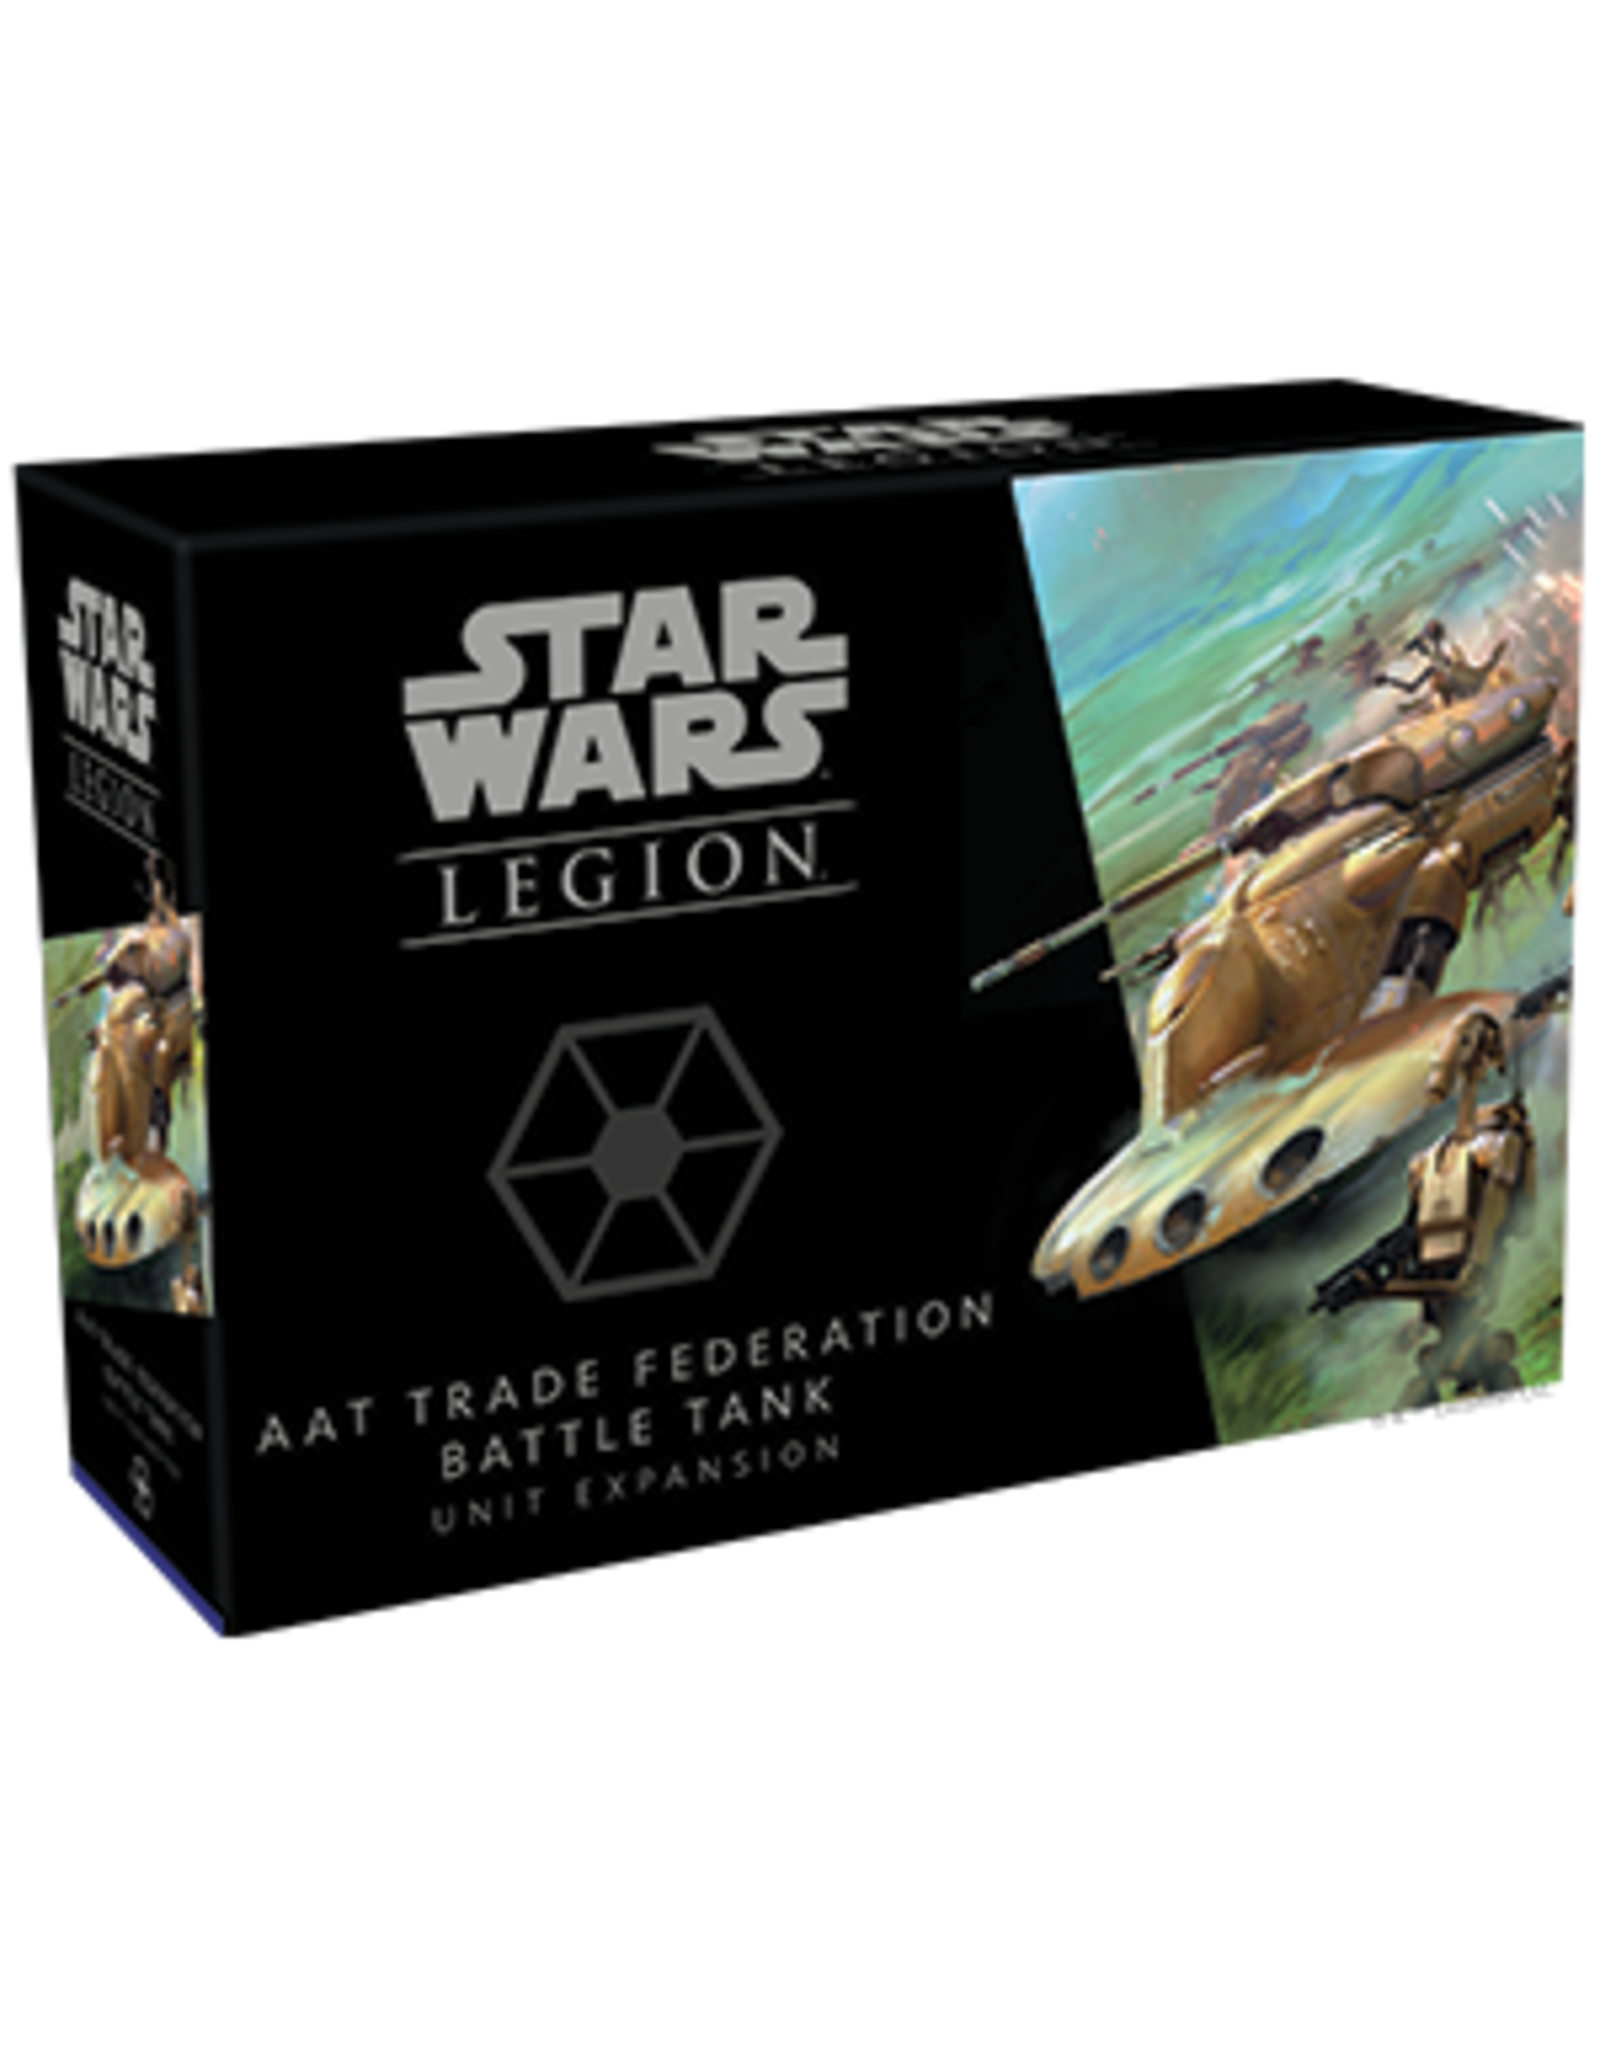 Star Wars Legion - AAT Trade Federation Battle Tank